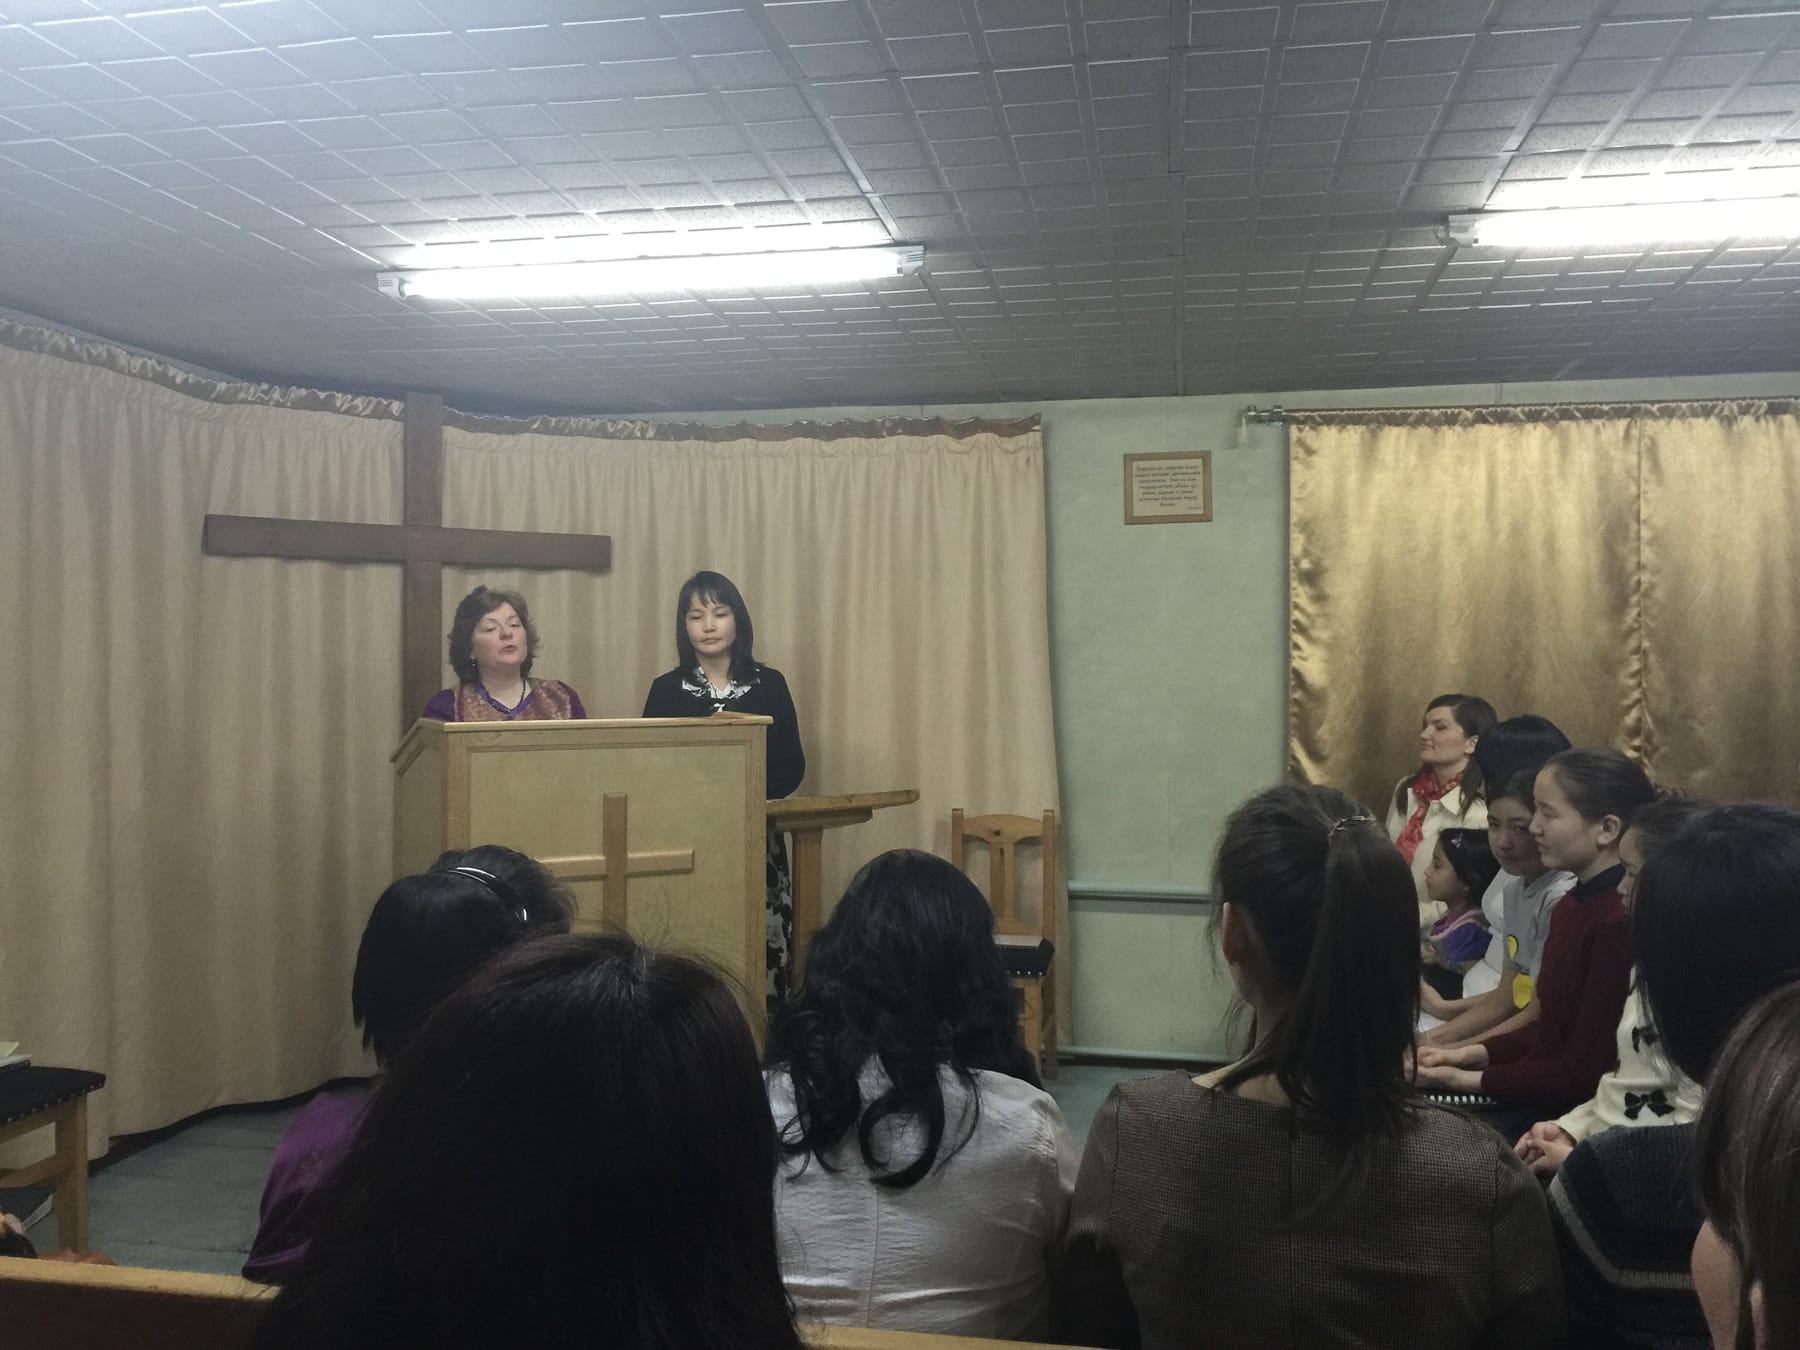 Fairhaven Baptist Church Mongolia (1 of 7)